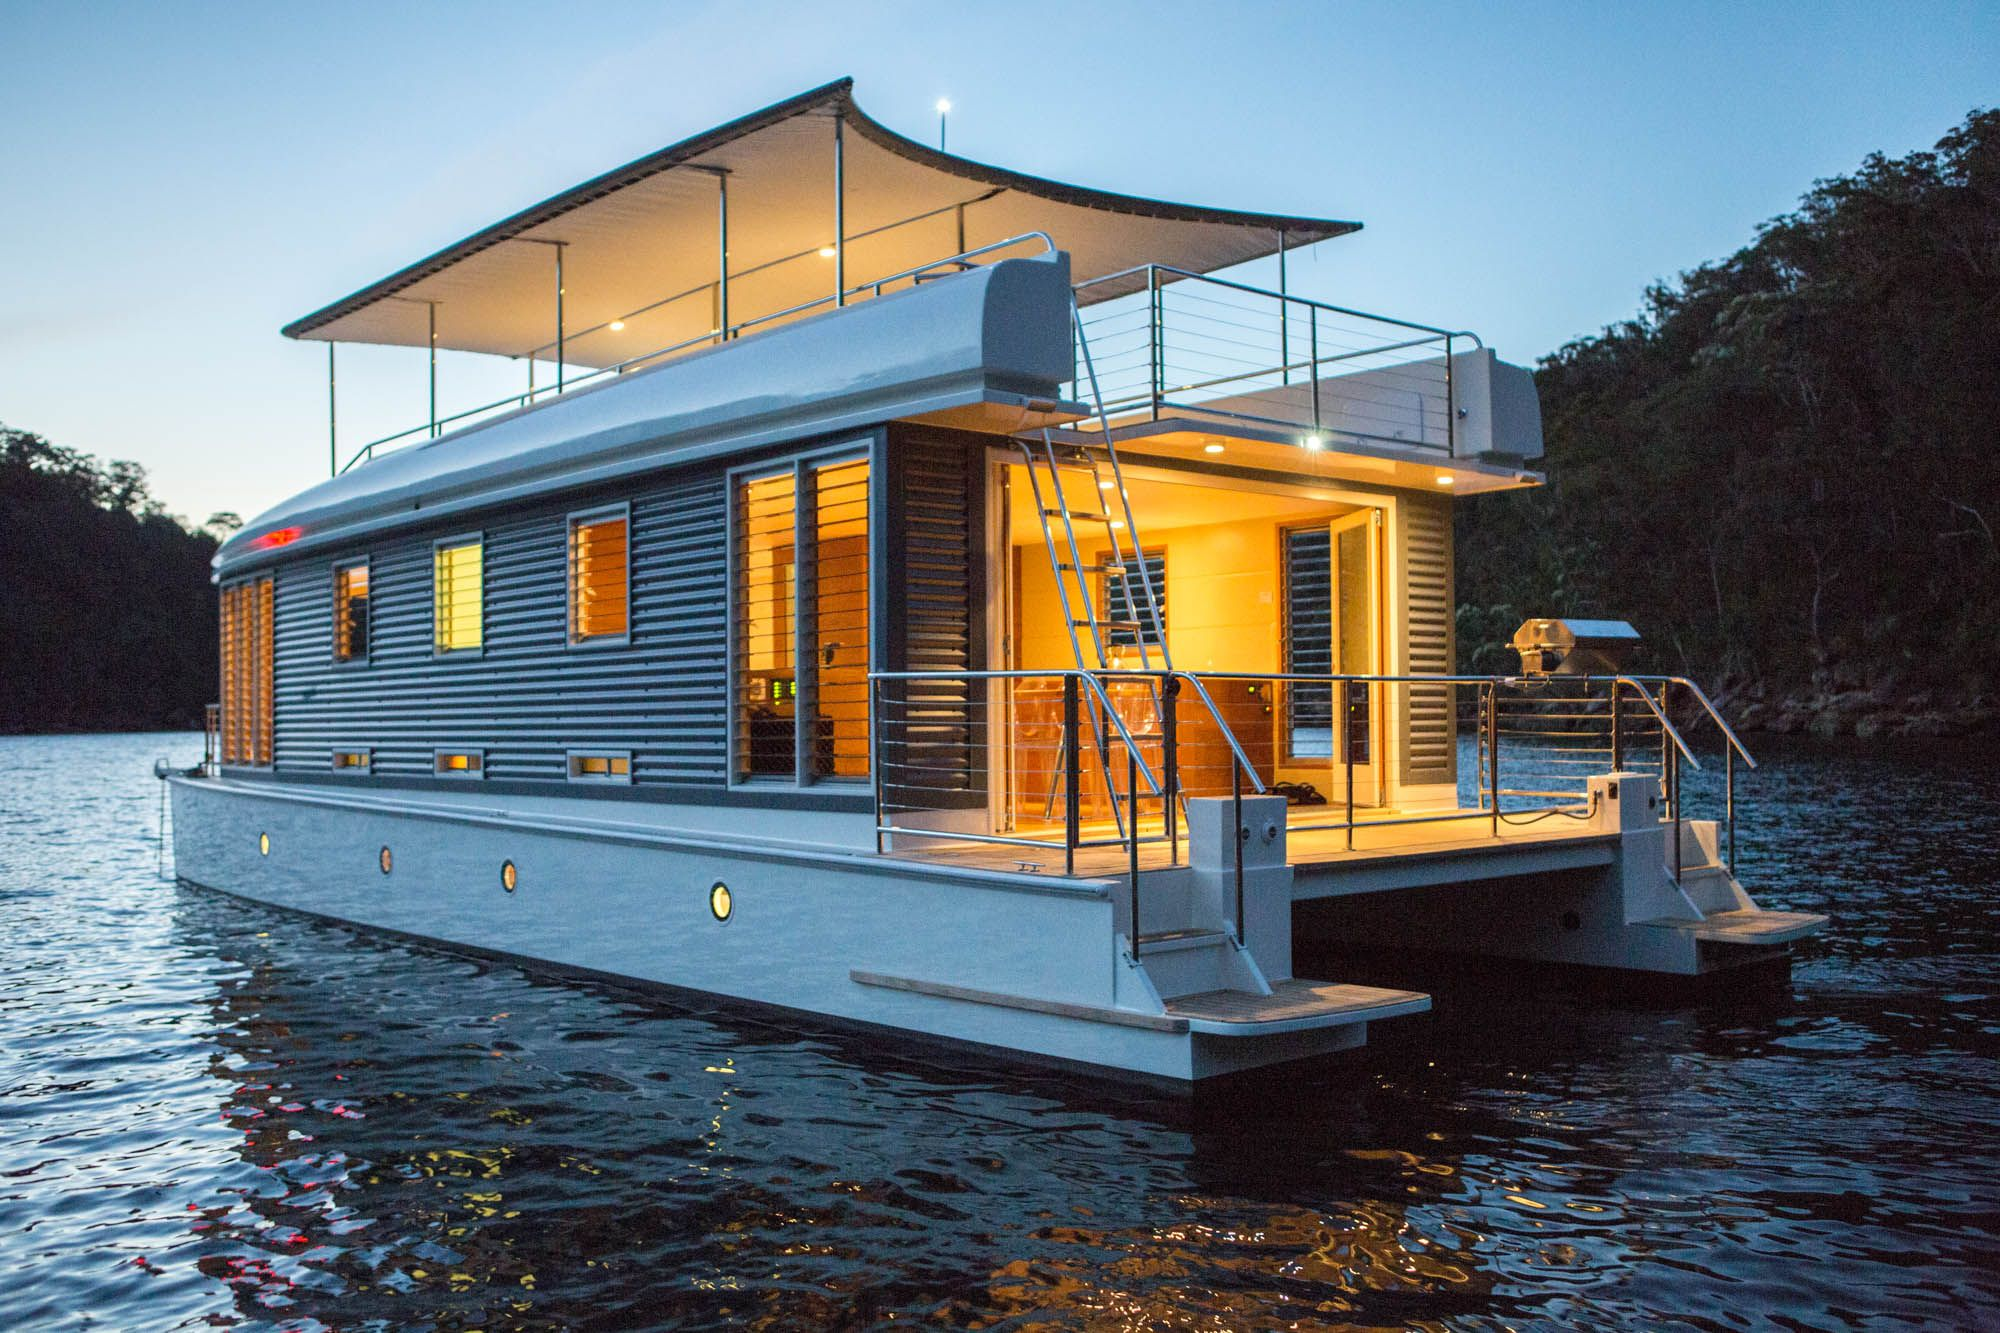 Mothershipmarine Au The World S First Solar Powered